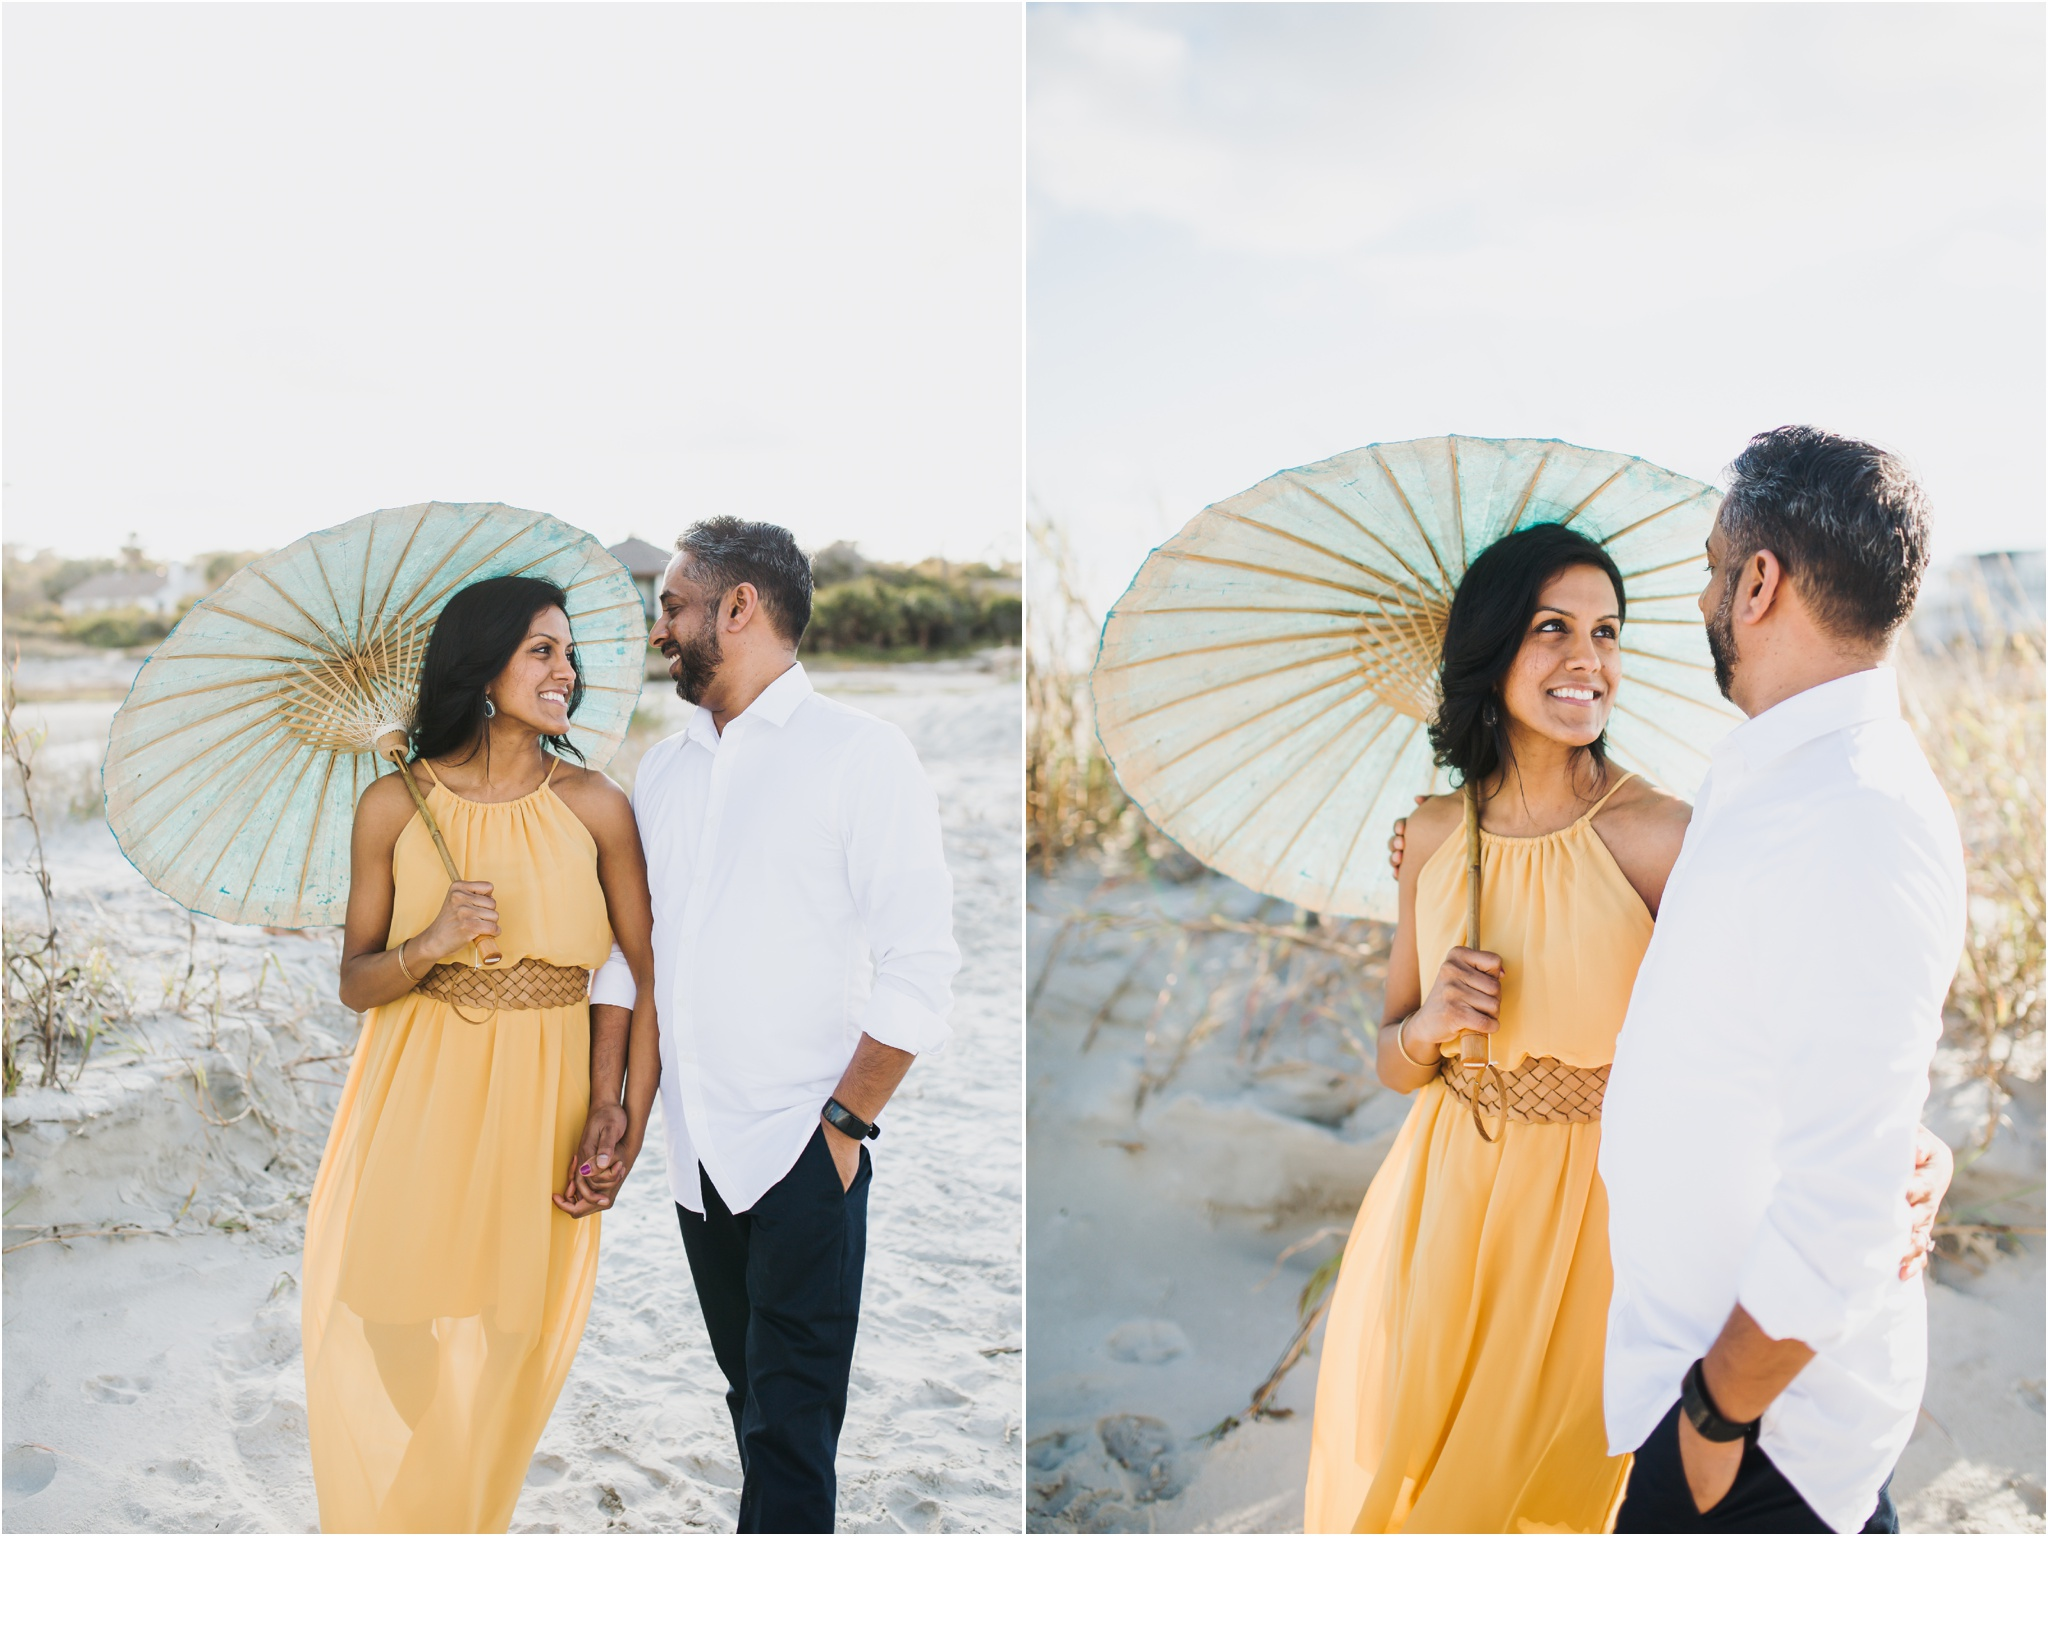 Rainey_Gregg_Photography_St._Simons_Island_Georgia_California_Wedding_Portrait_Photography_1763.jpg